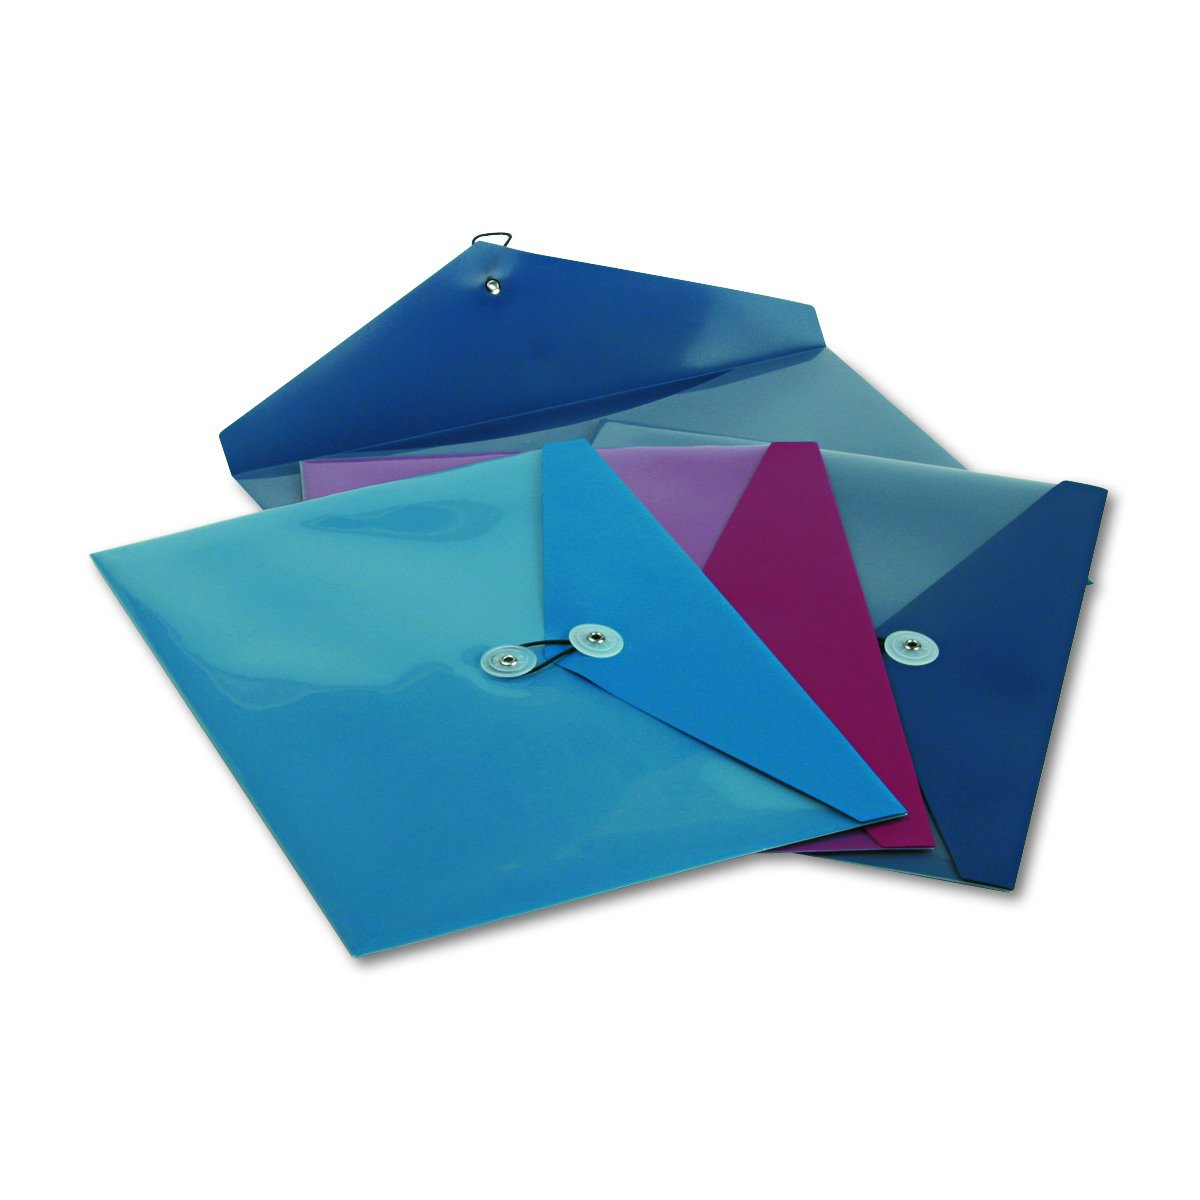 Pendaflex 90016 Poly Booklet Envelope, Side Opening, 12 1/2 x 9 1/4, 3 Colors, Pack of 4 PFX90016